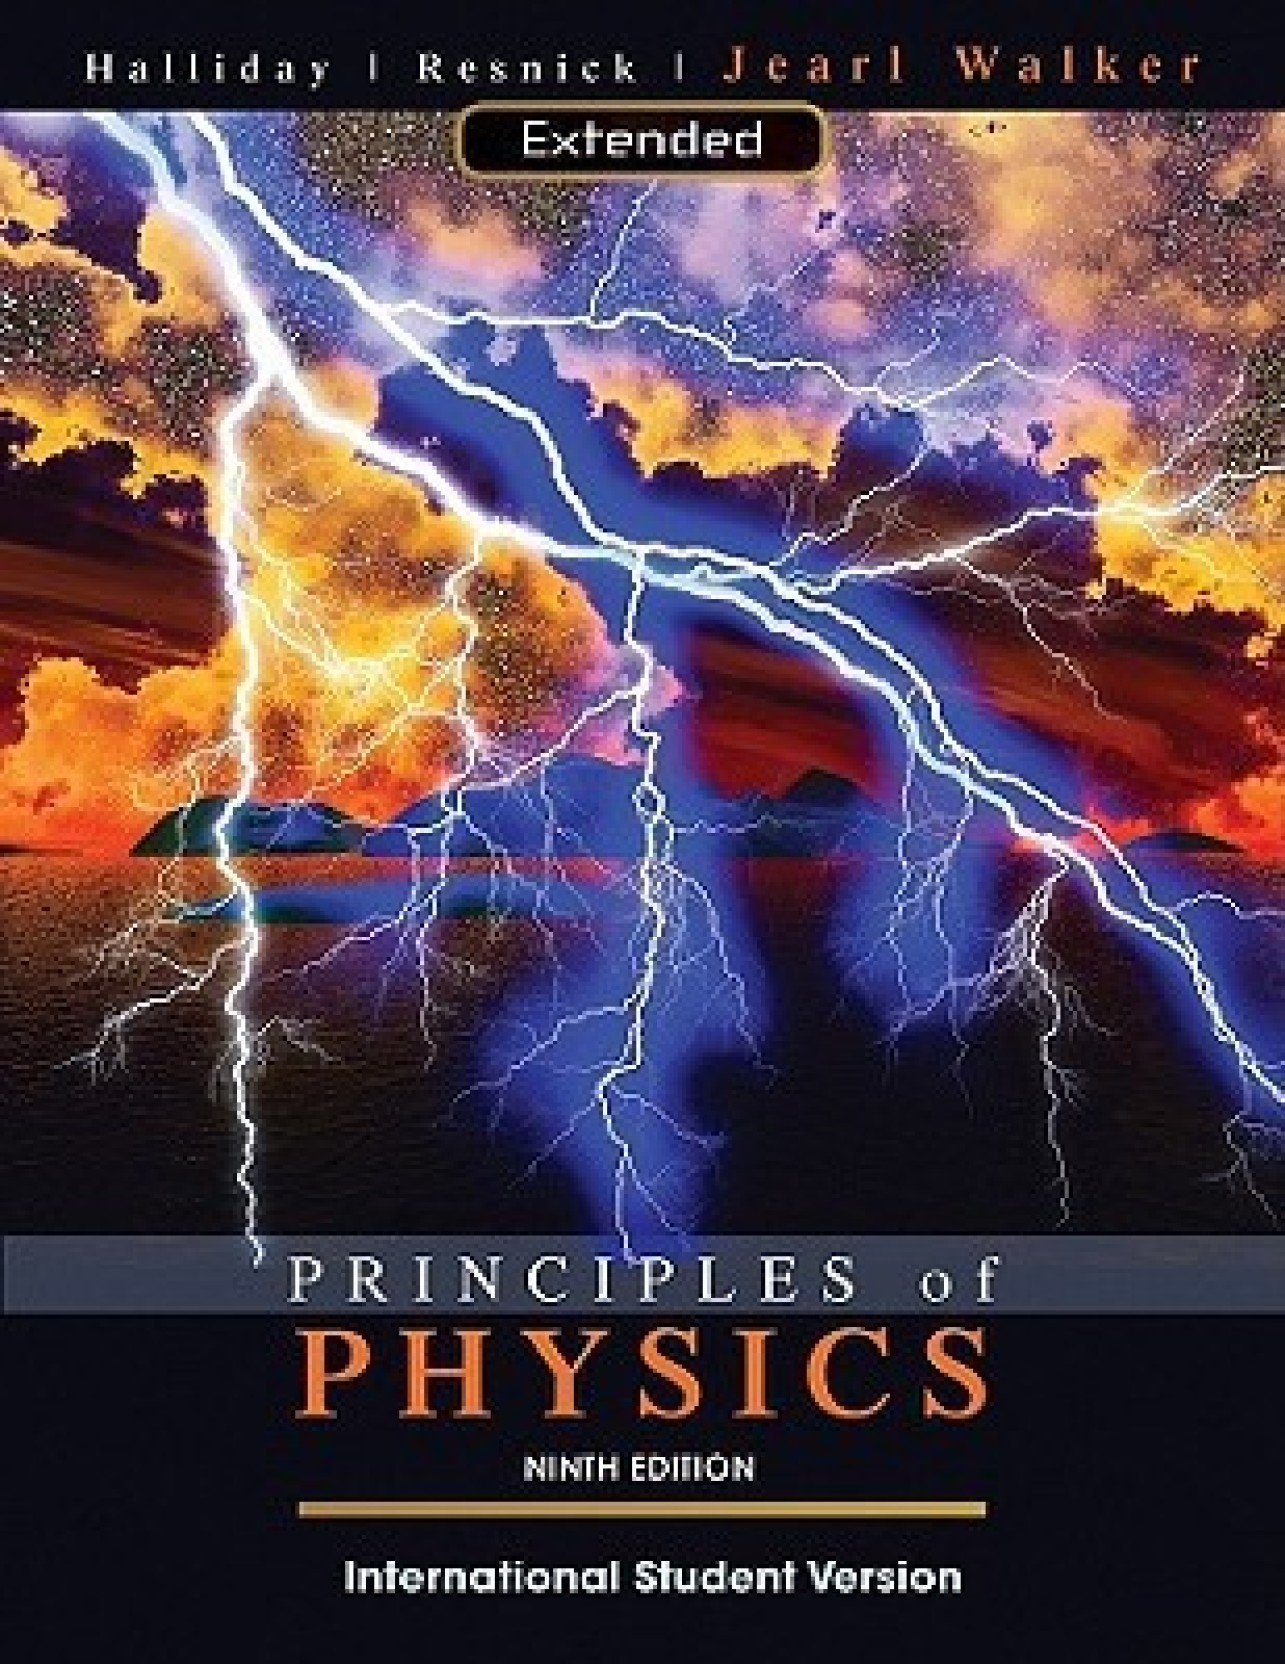 Principles of physics 10th edition solution manual